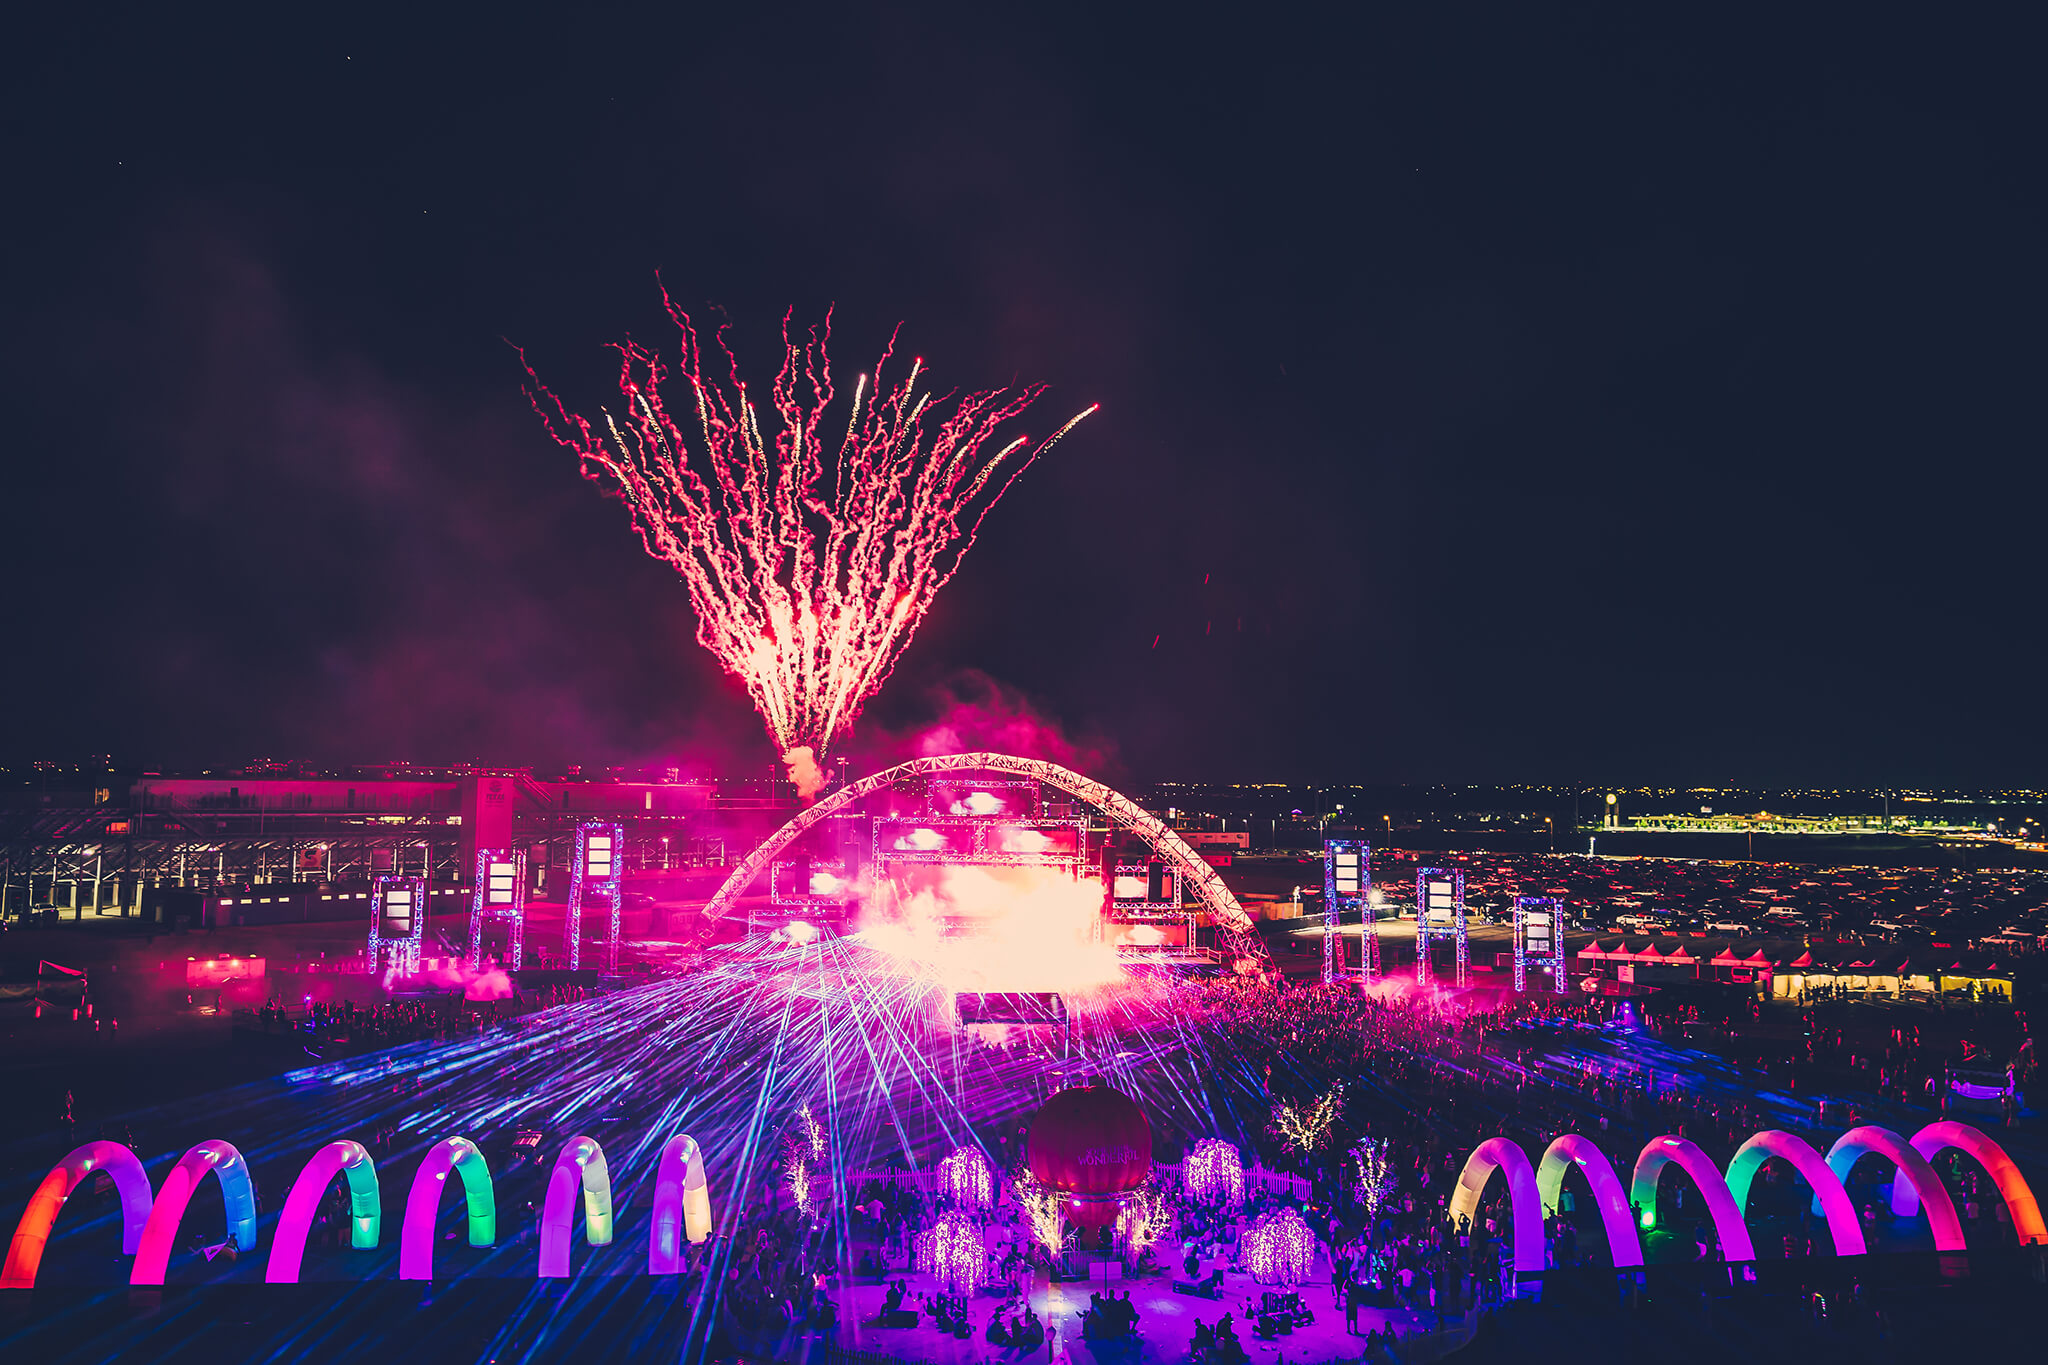 fireworks for tiesto's headlining set at something wonderful festival